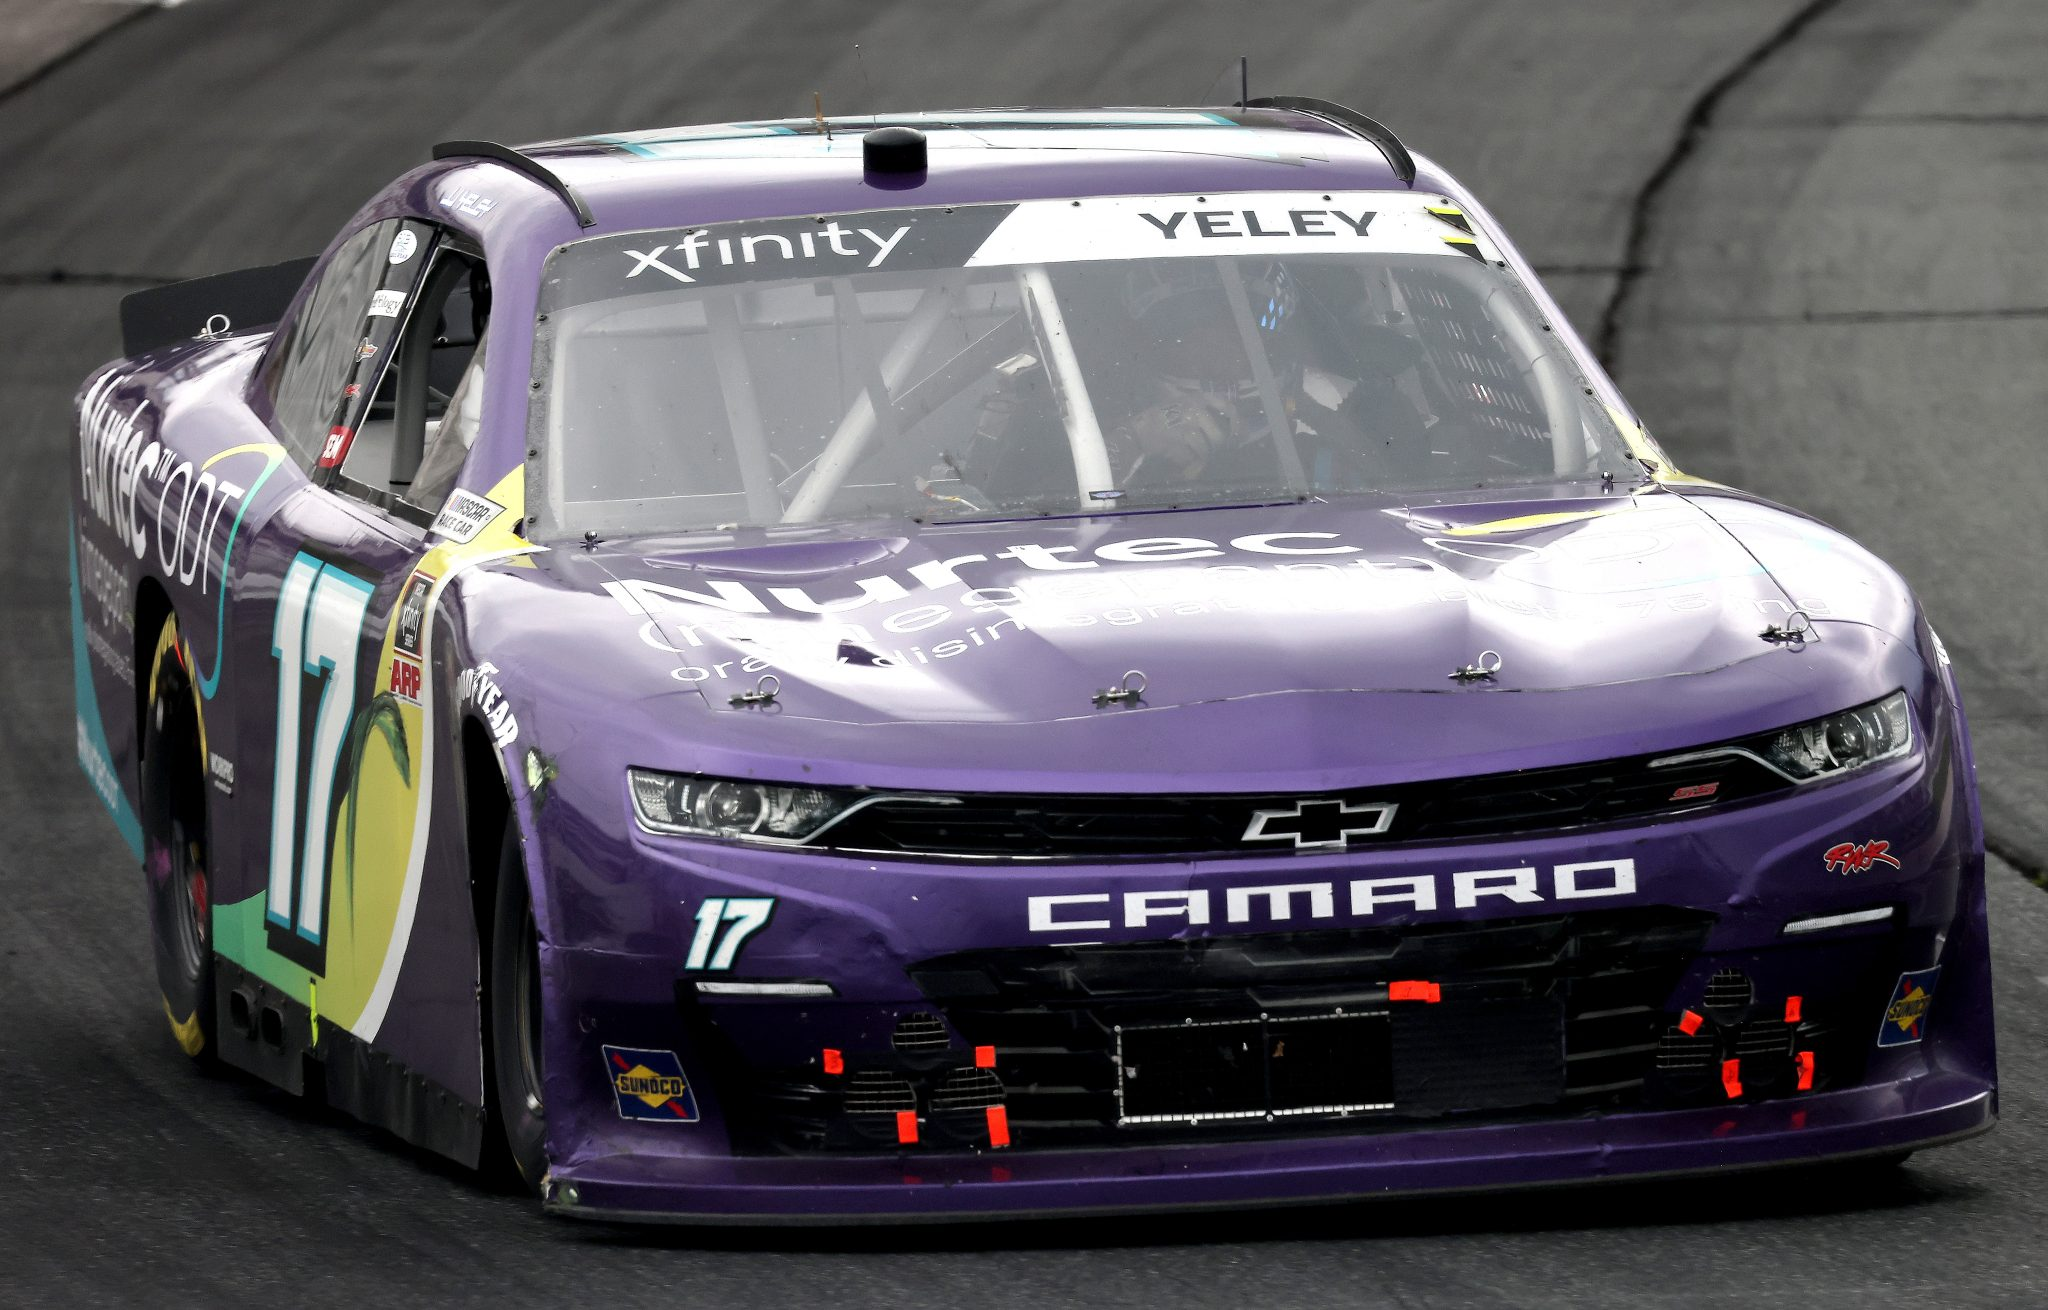 LOUDON, NEW HAMPSHIRE - JULY 17: JJ Yeley, driver of the #17 Nurtec ODT Chevrolet, drives during the NASCAR Xfinity Series Ambetter Get Vaccinated 200 at New Hampshire Motor Speedway on July 17, 2021 in Loudon, New Hampshire. (Photo by James Gilbert/Getty Images)   Getty Images